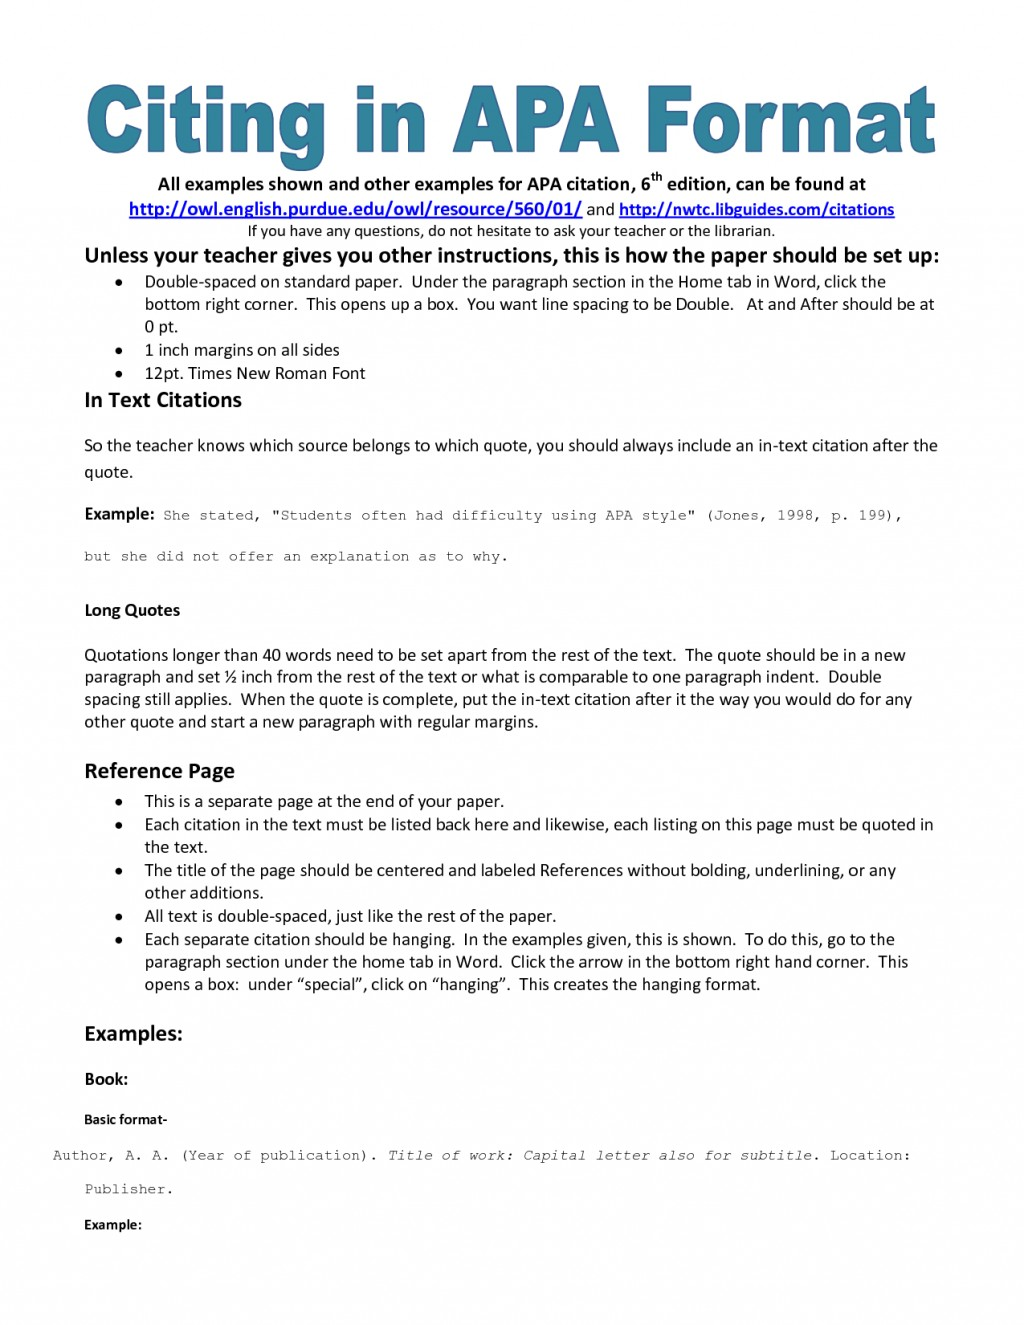 006 Essay Example In Apa Format Shocking Paper Written Large